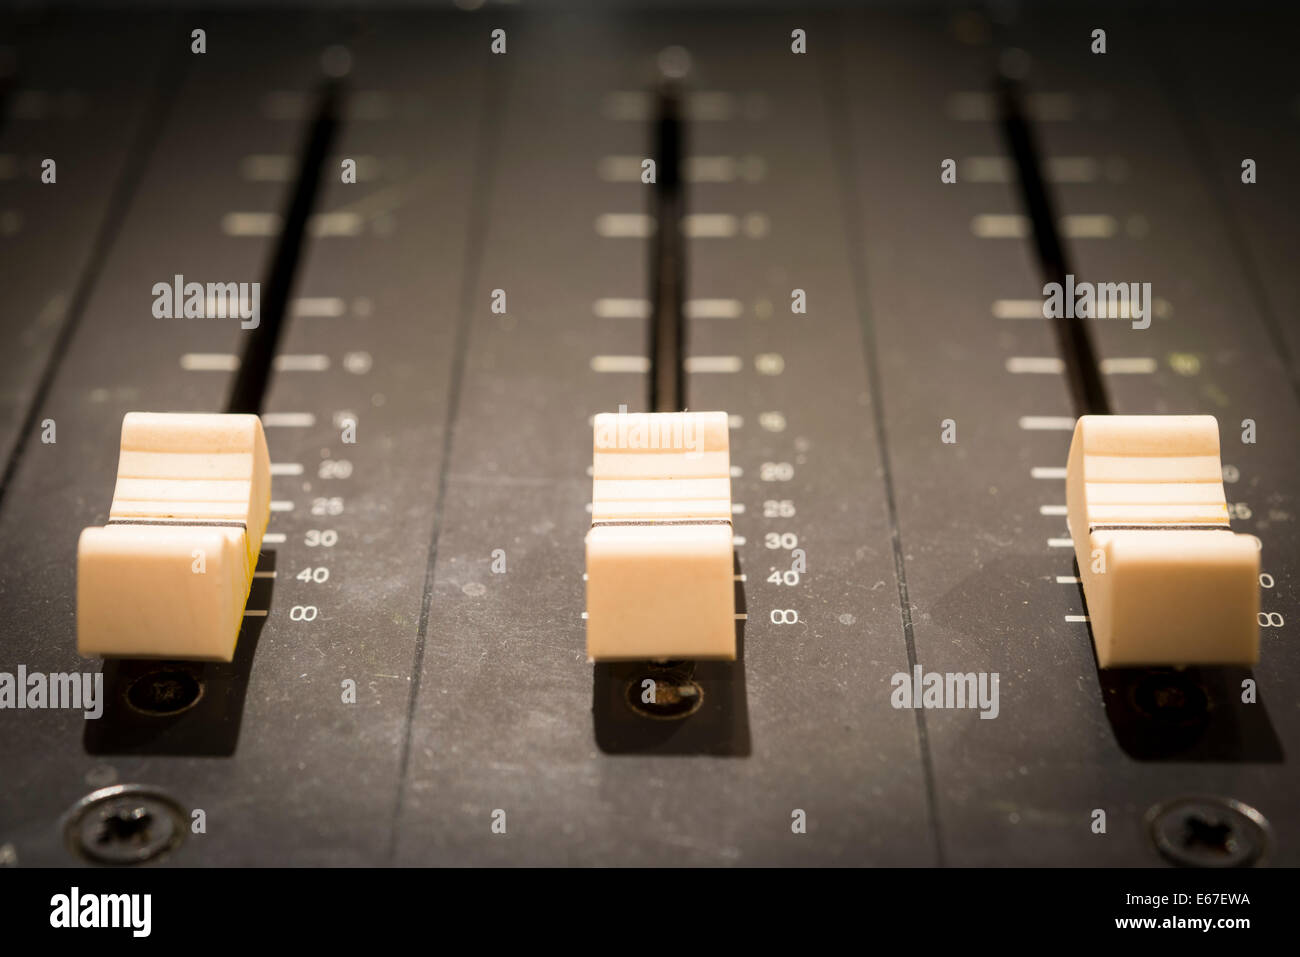 Mixing Desks High Resolution Stock Photography and Images - Alamy